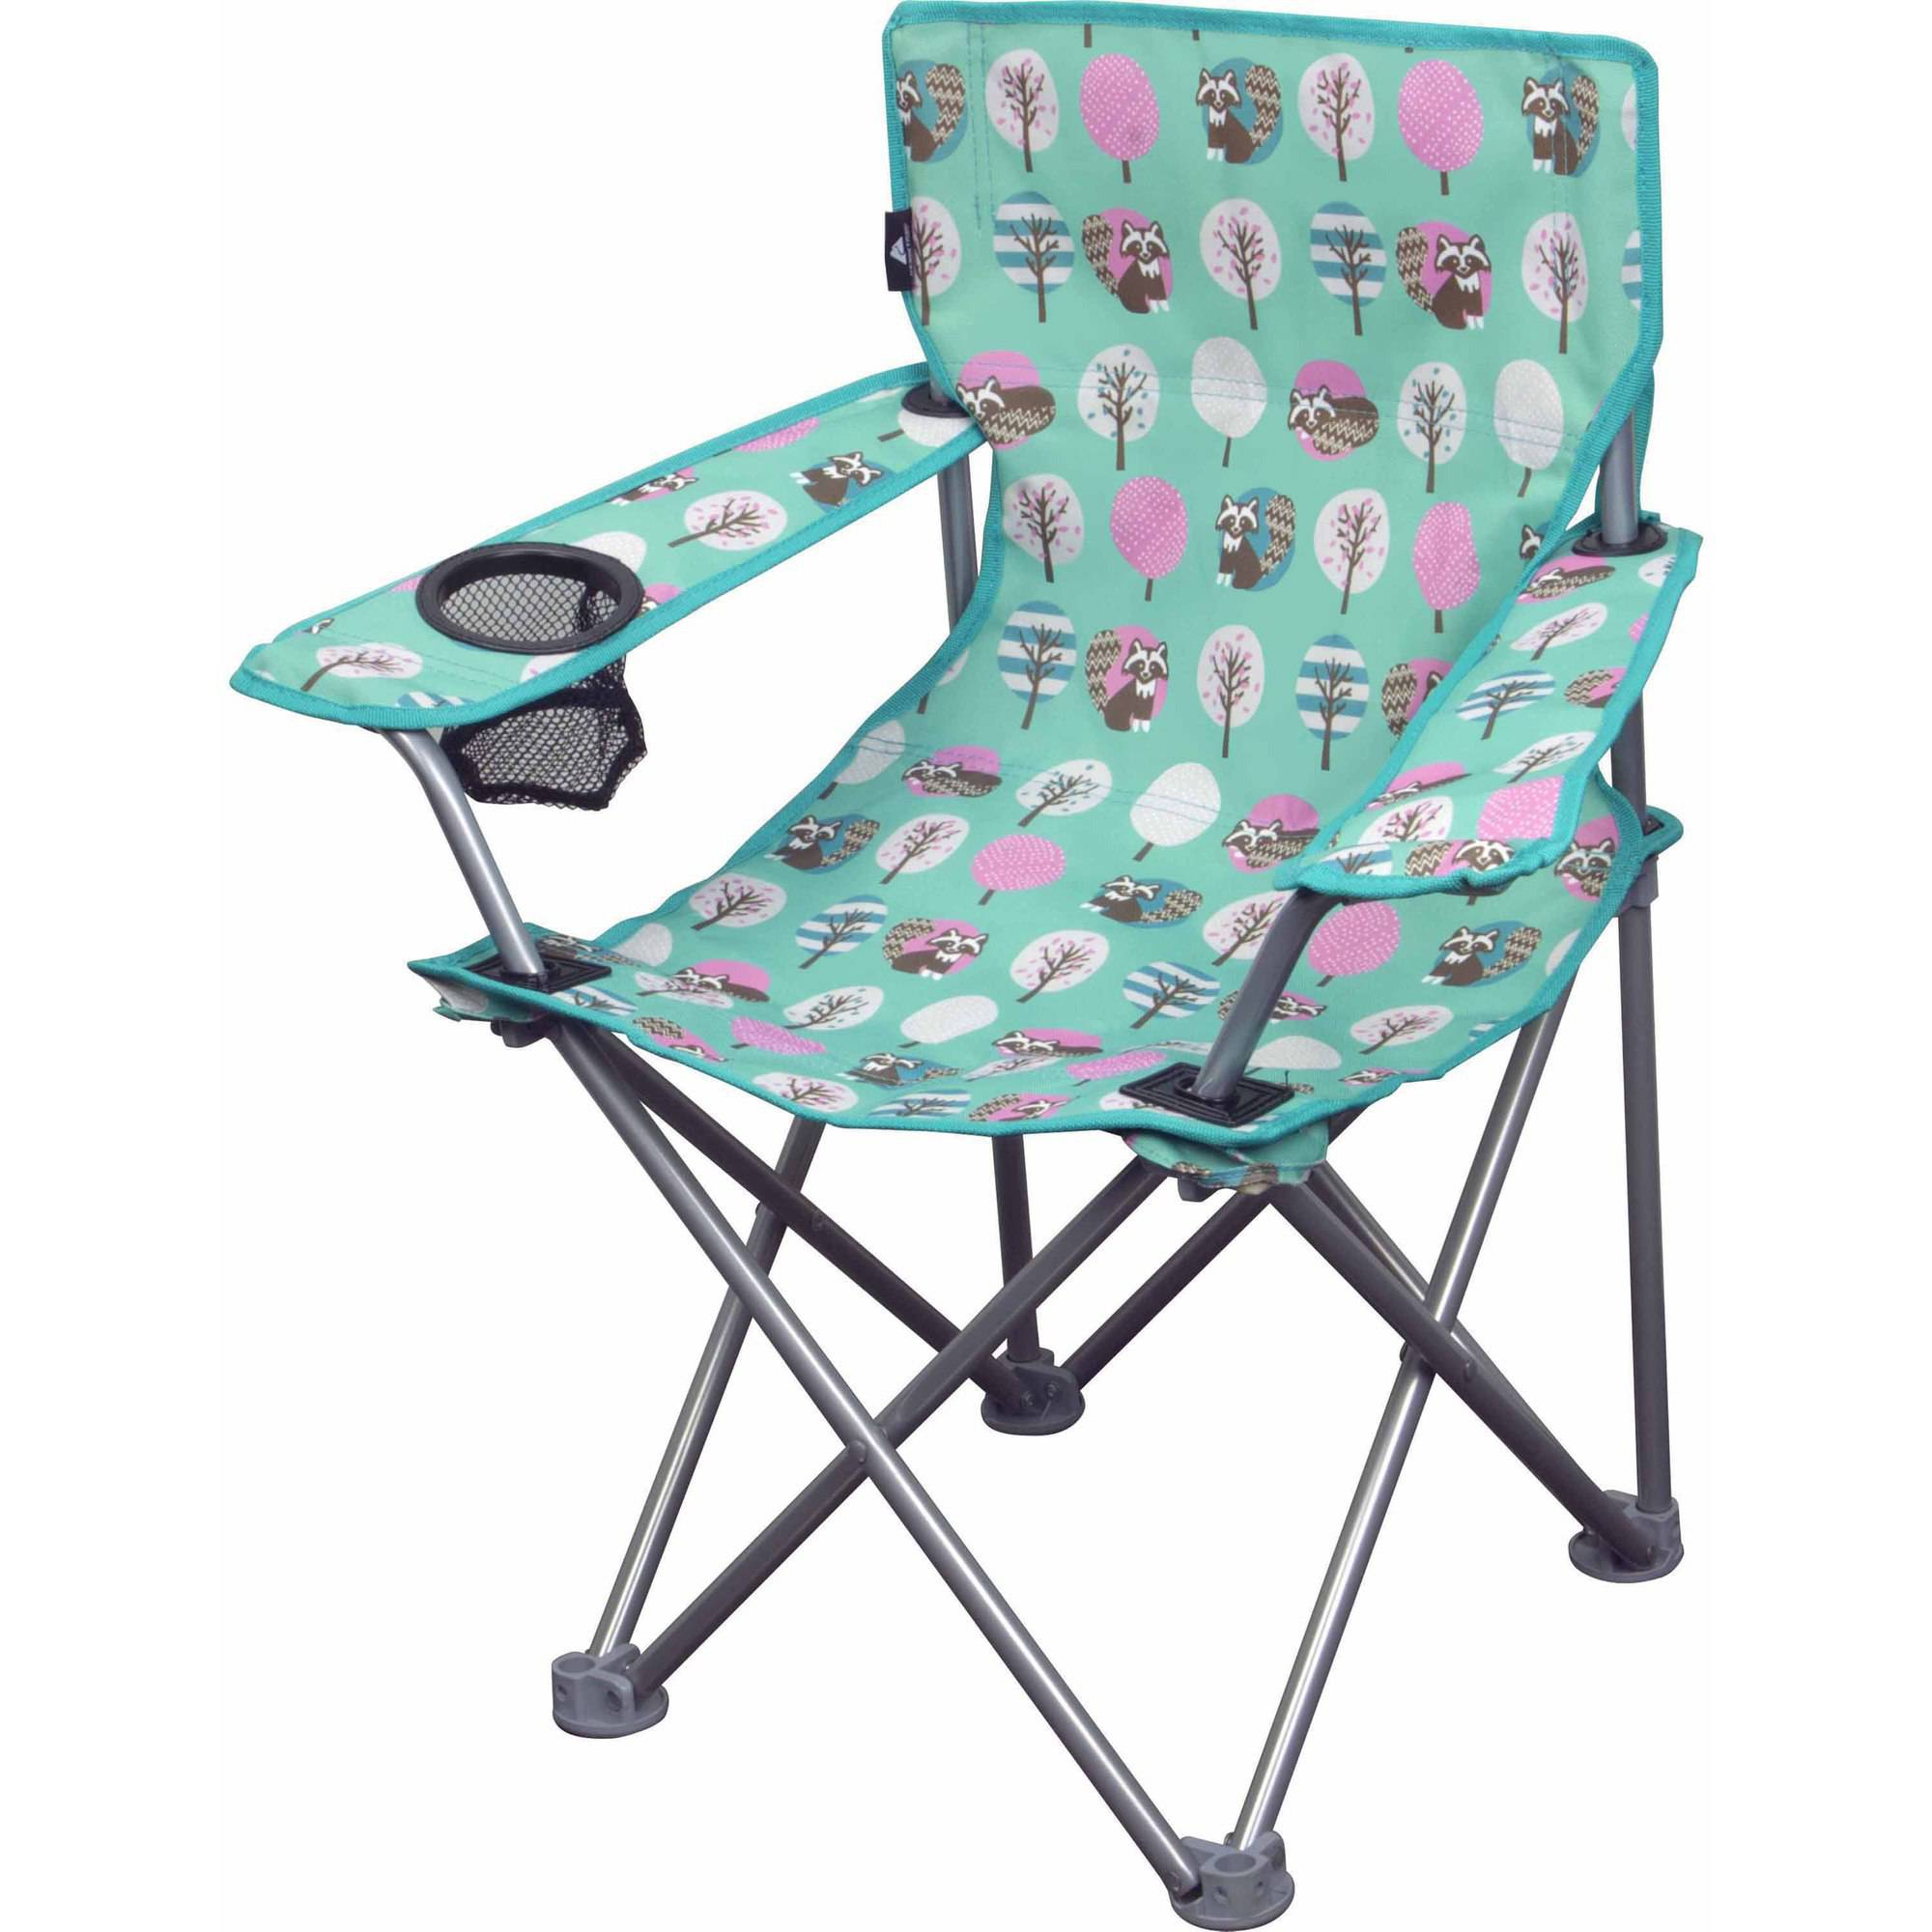 Cute Folding Chairs Folding Chairs At Walmart